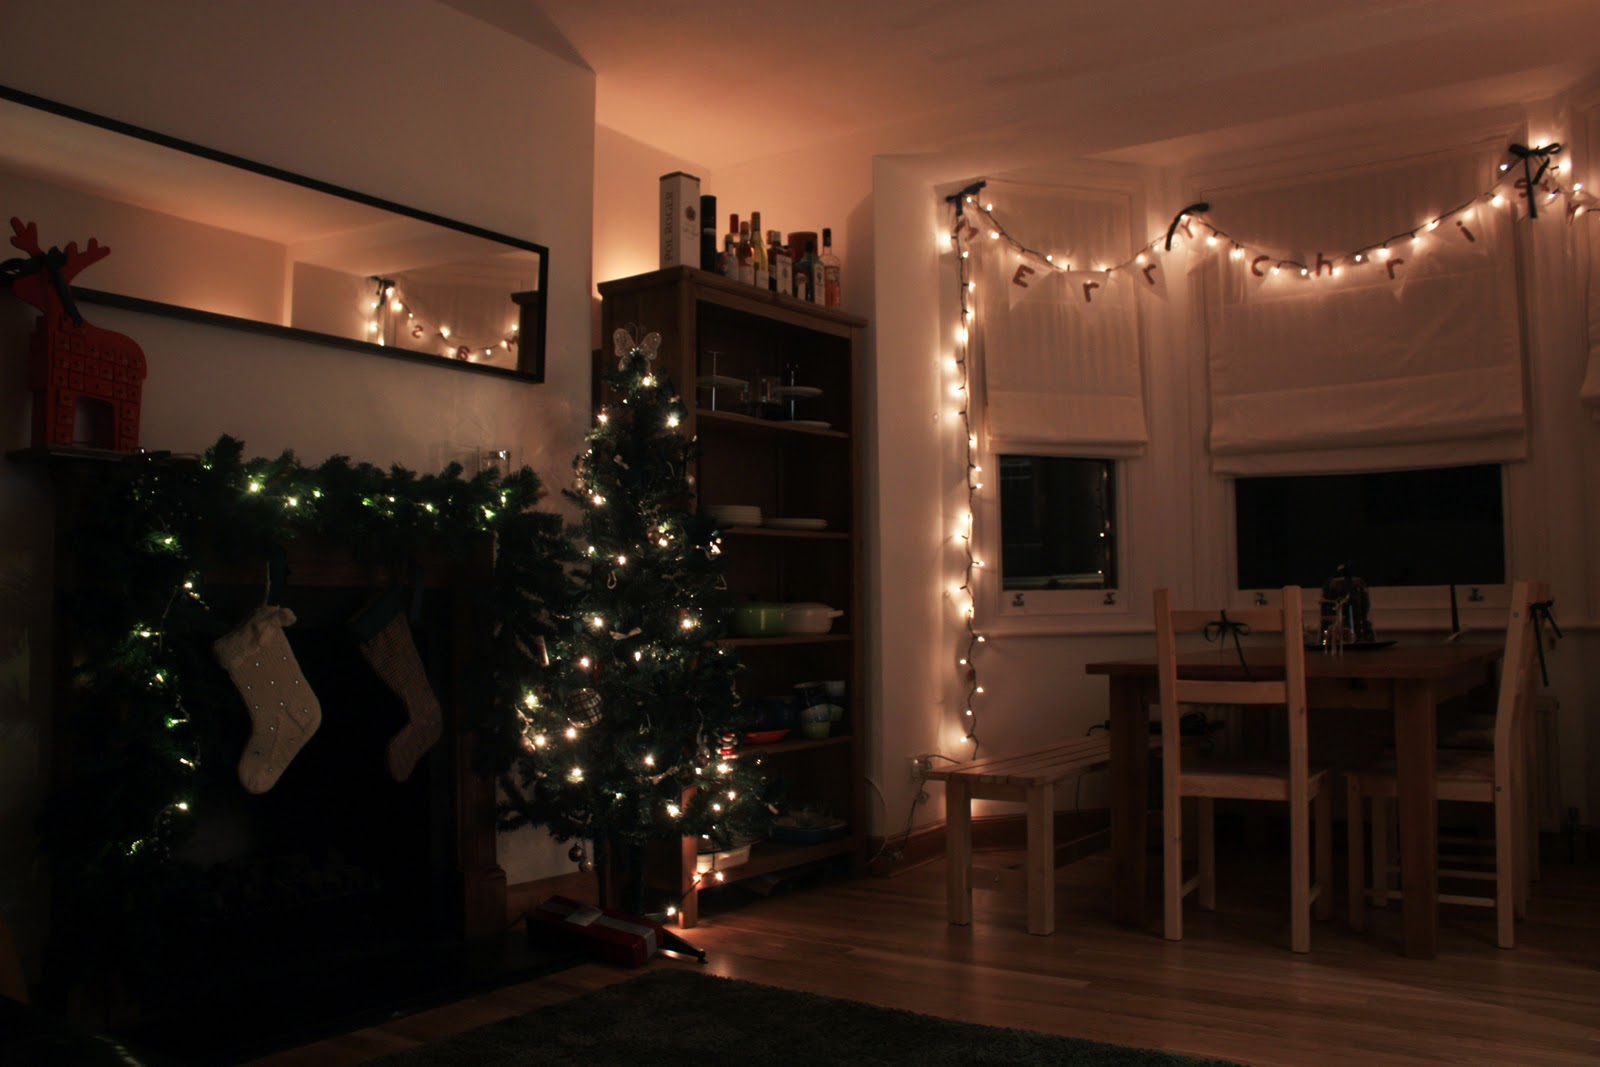 Fairy Lights Five Creative Ways To Use Them Electrical - How to use fairy lights in bedroom